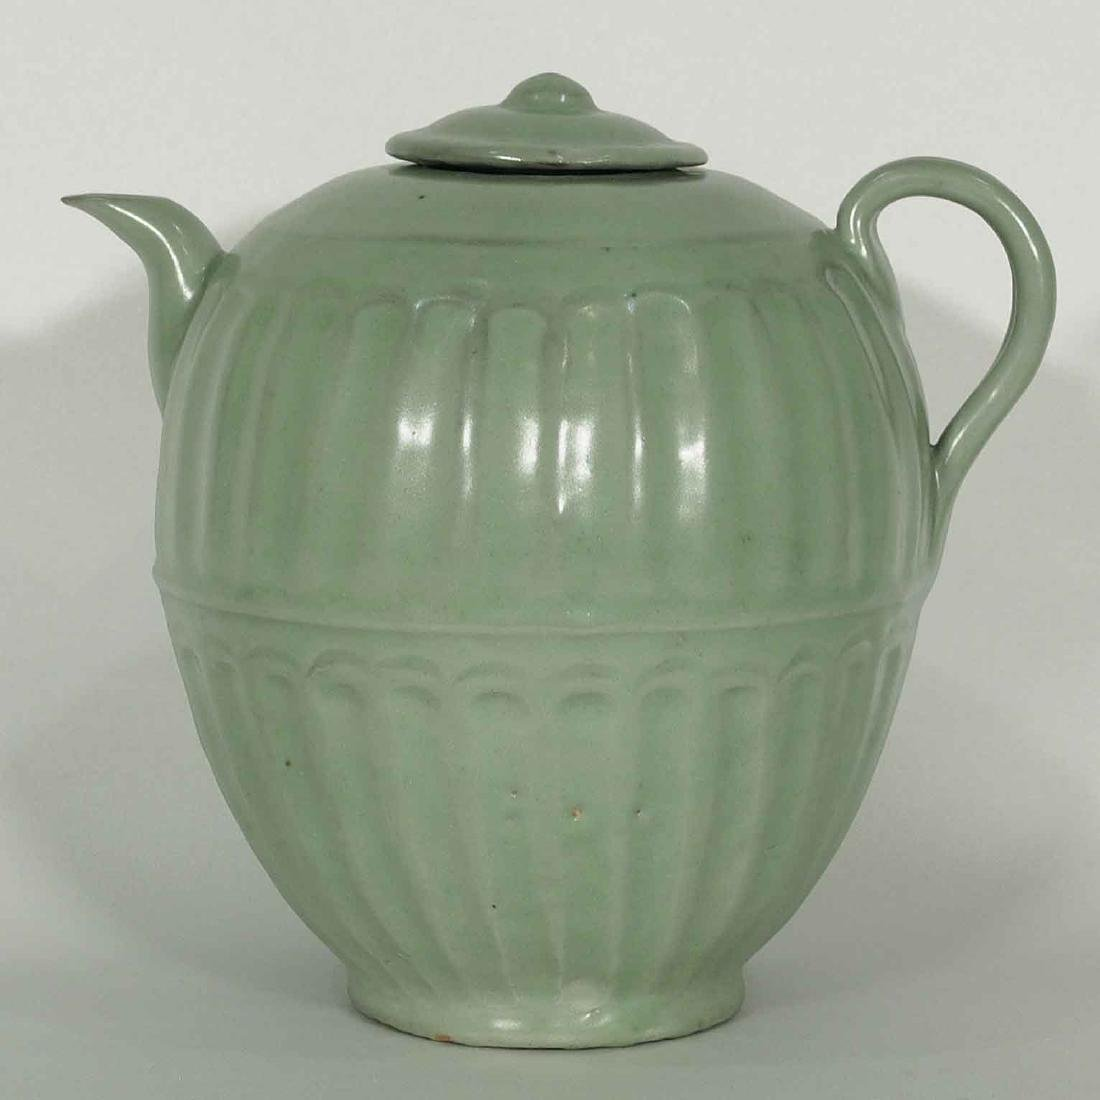 Longquan Fluted Ewer with Lid, late Southern Song - 2